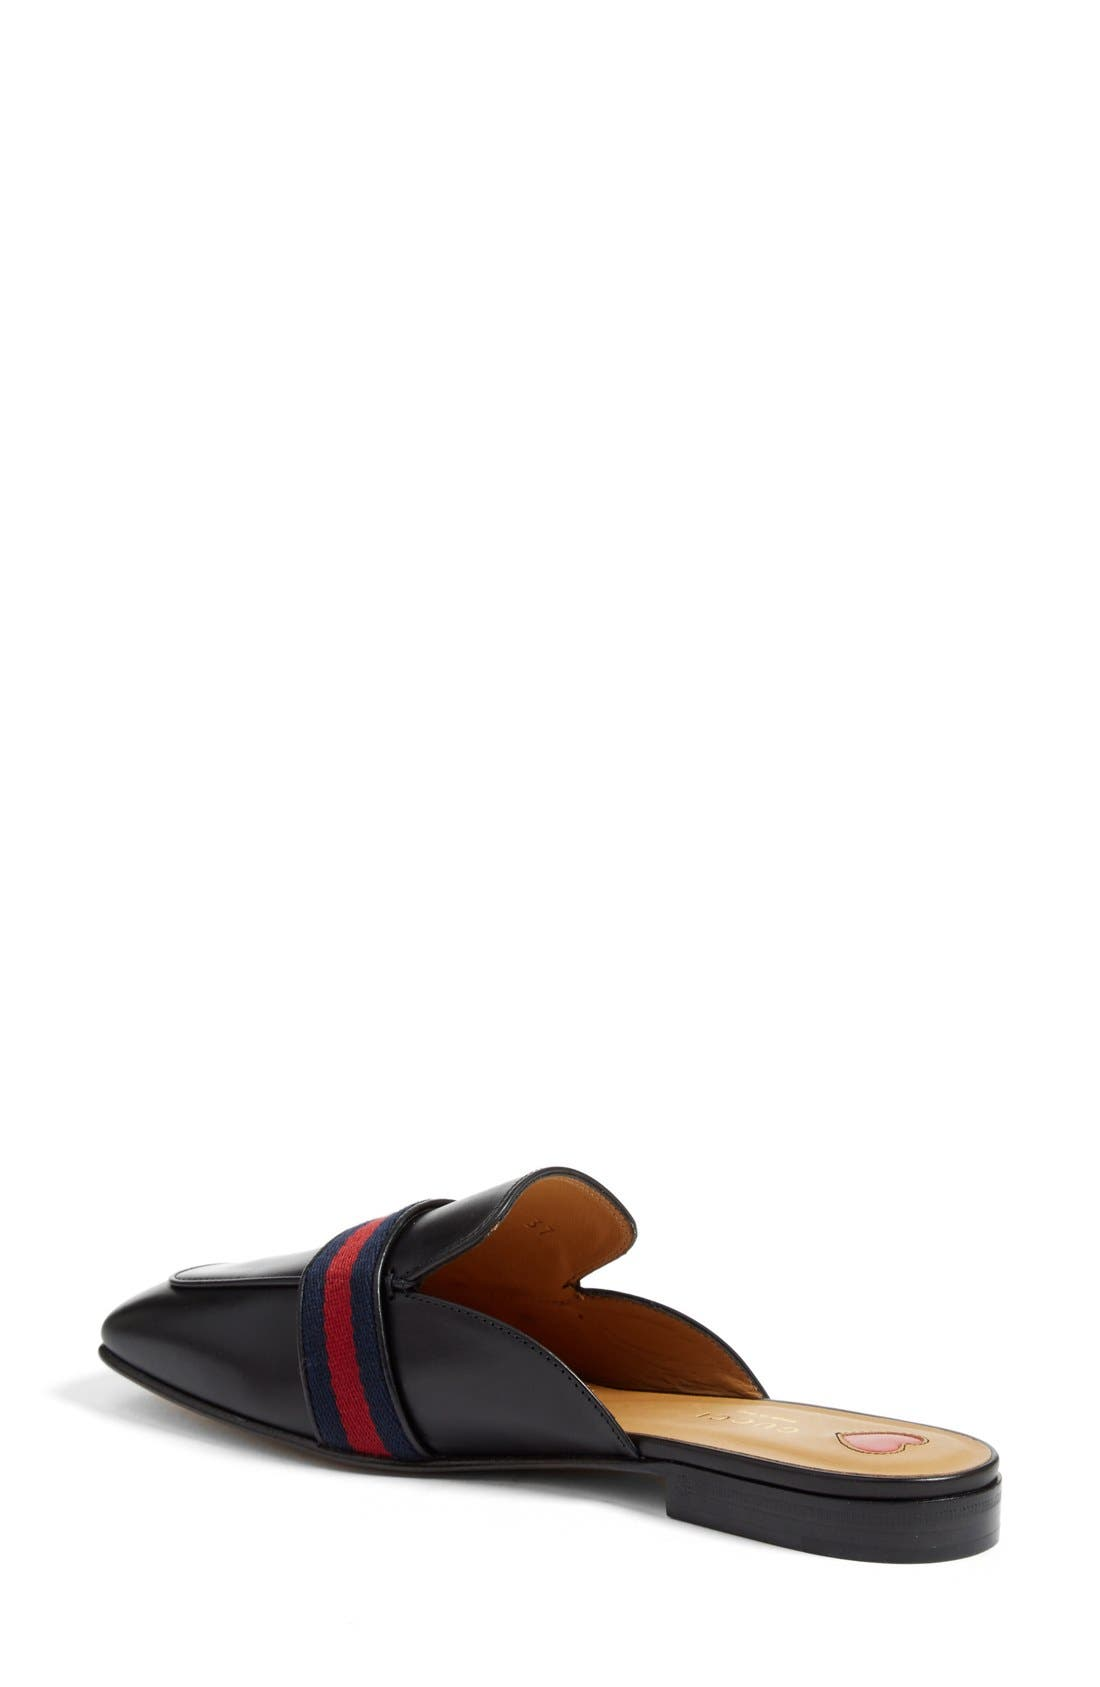 Loafer Mule,                             Alternate thumbnail 2, color,                             BLACK LEATHER